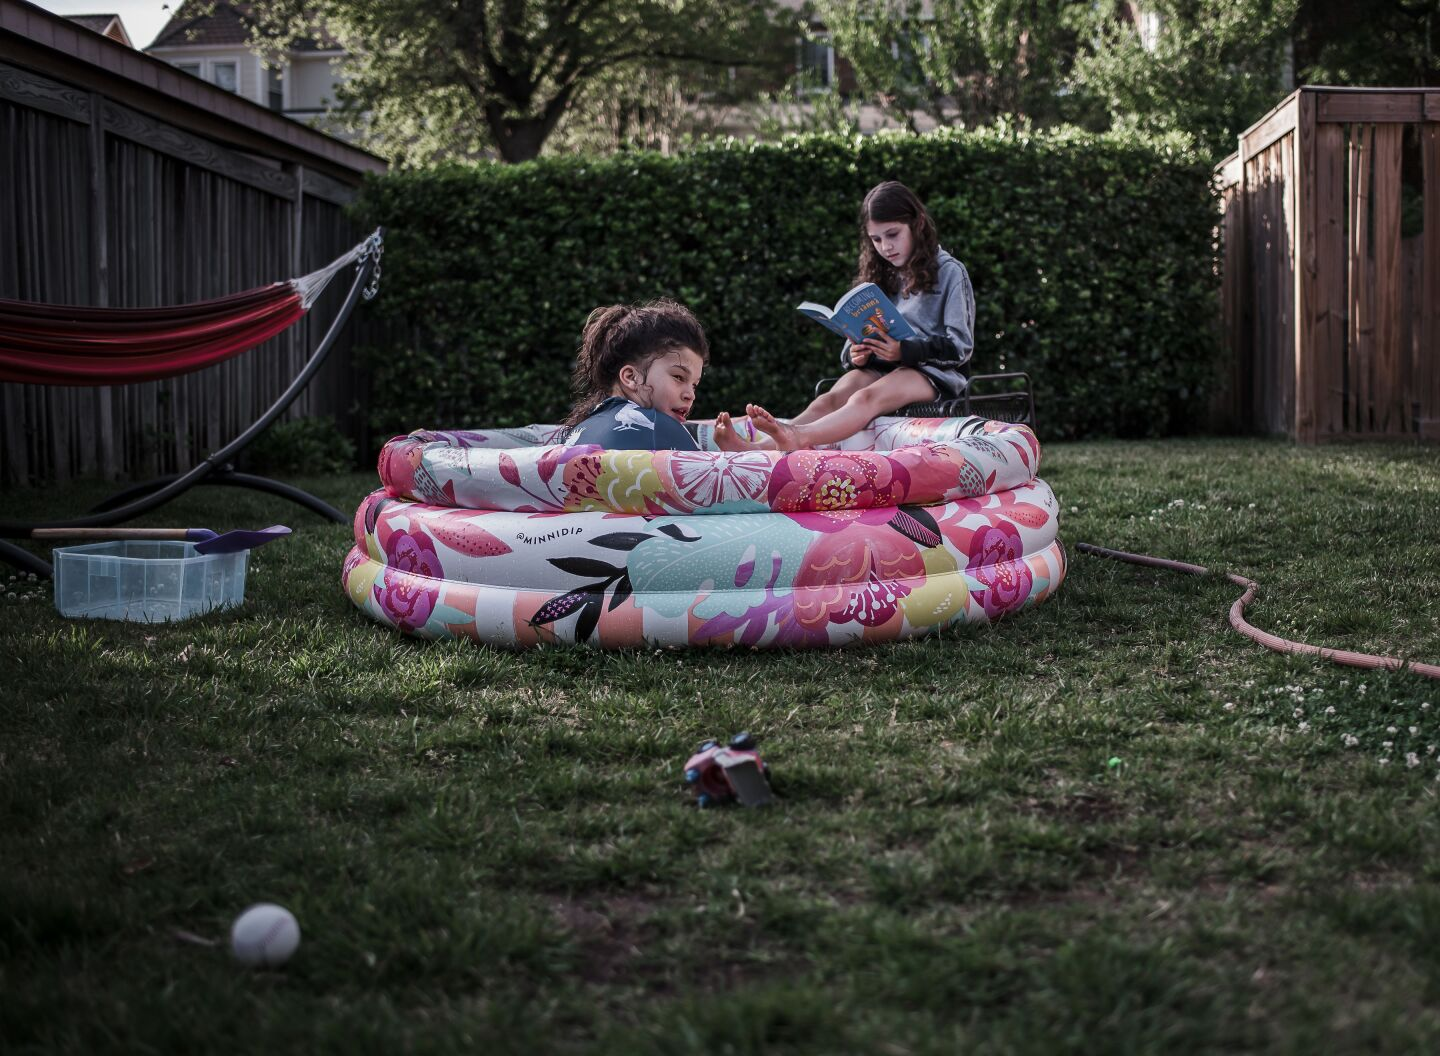 Two young girls playing in a small inflatable pool in the garden